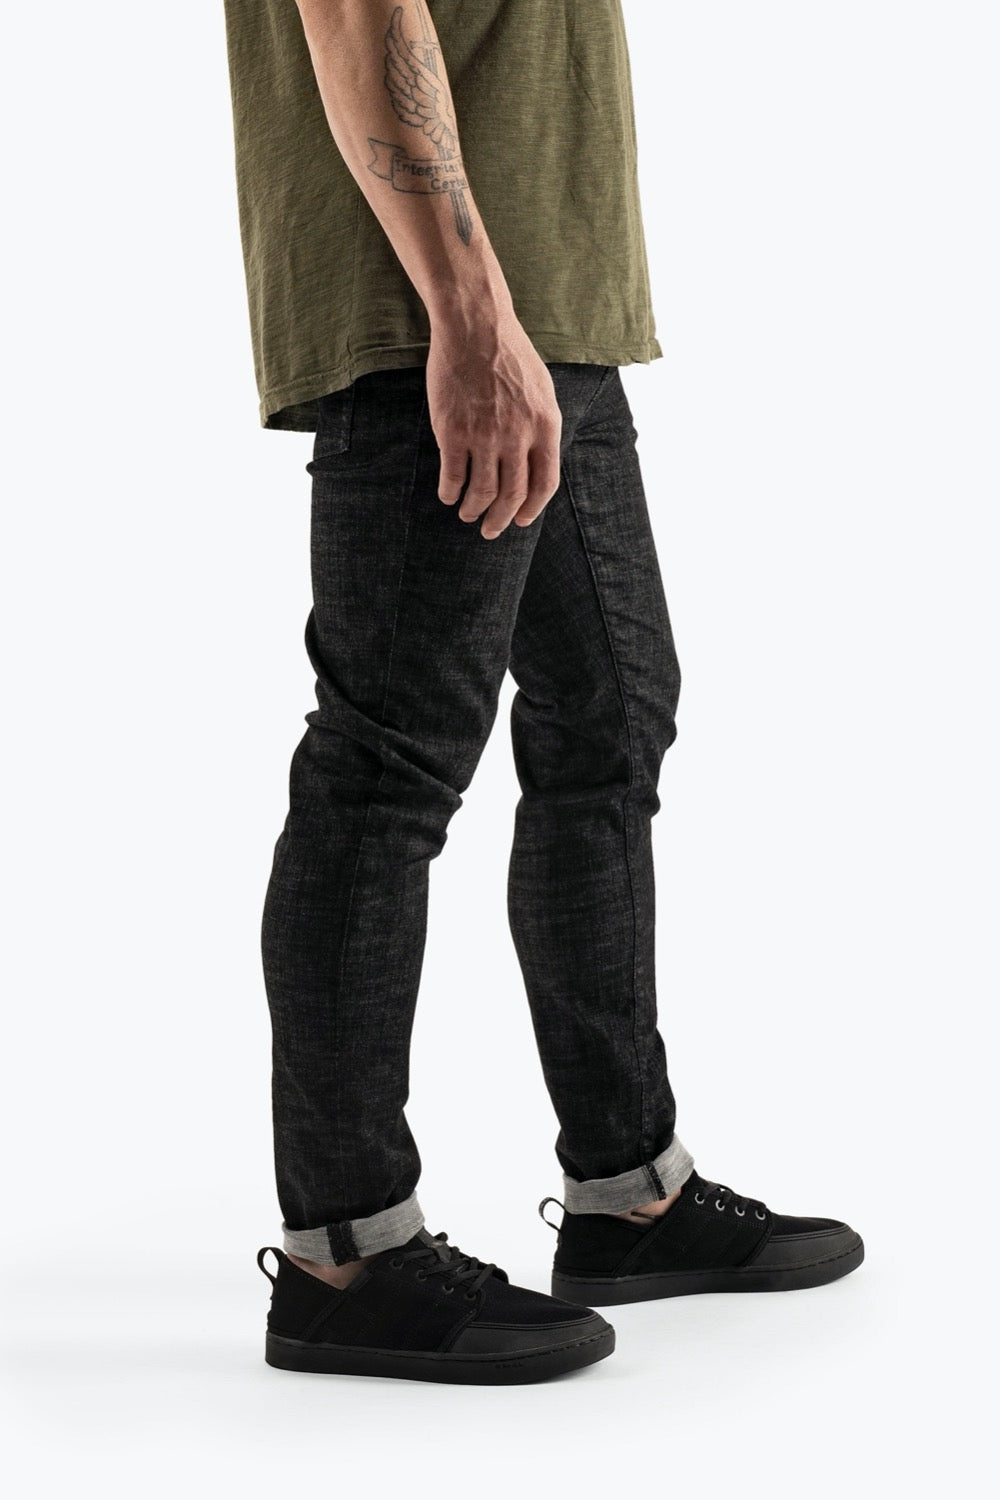 So iLL mens denim climbing jeans pants Black